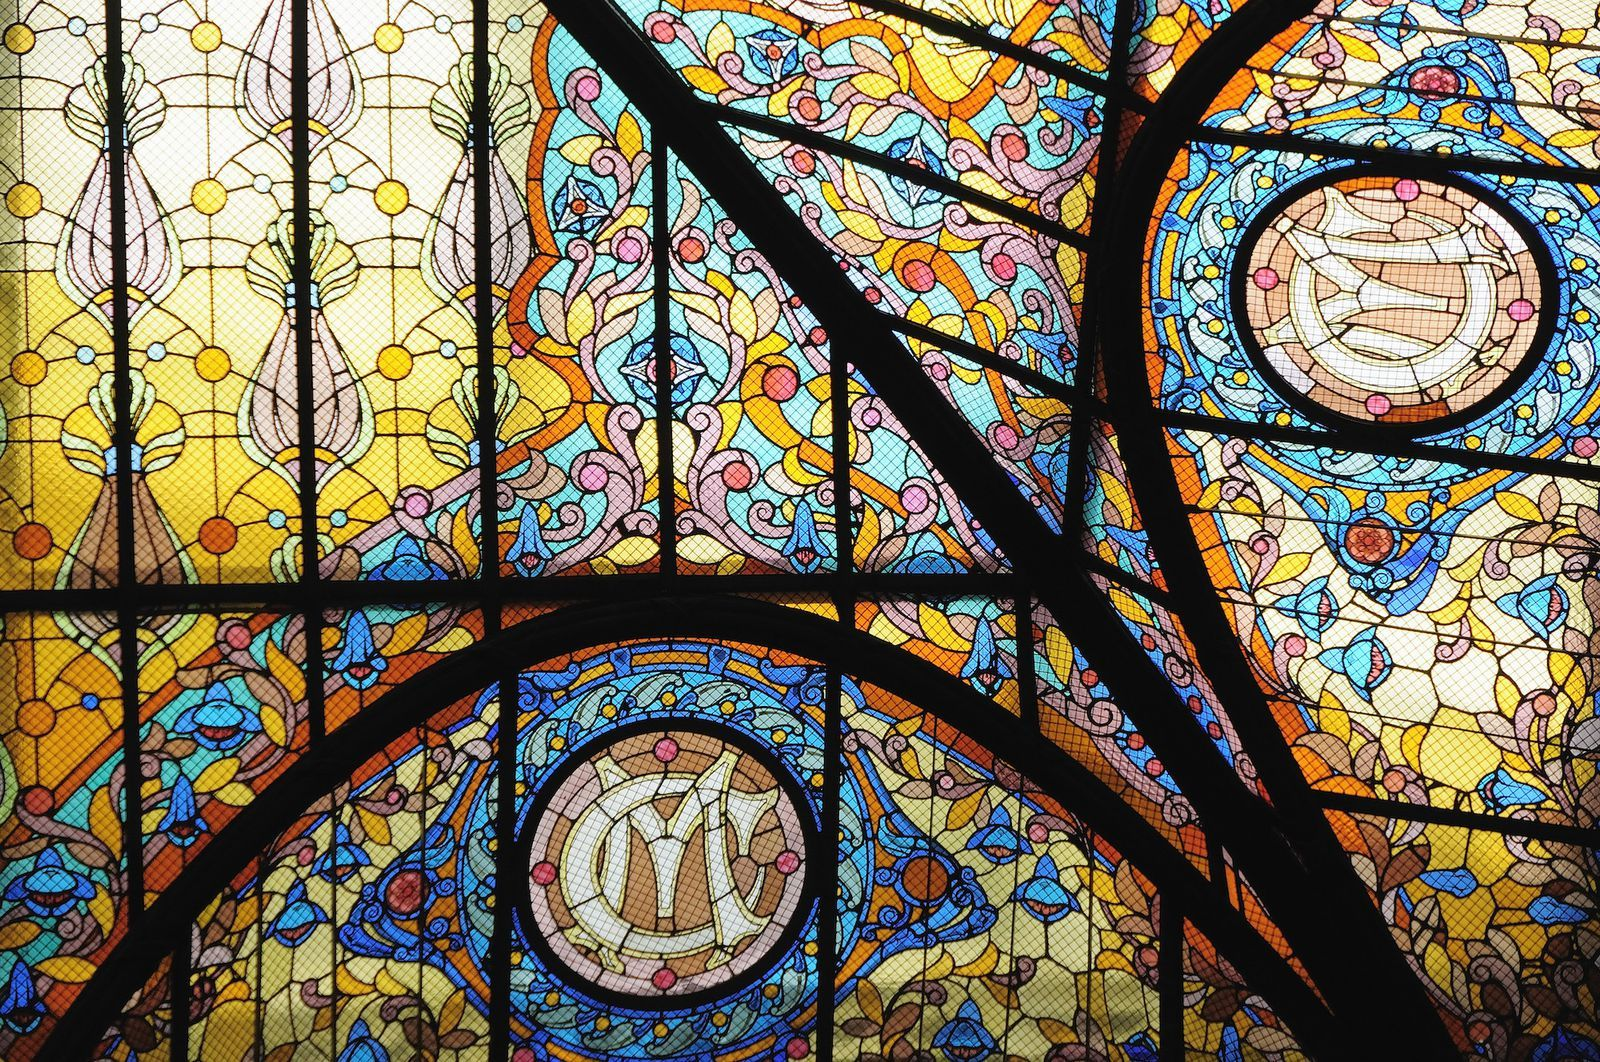 Marvel At 15 Of The Most Beautiful Stained Glass Windows In The World